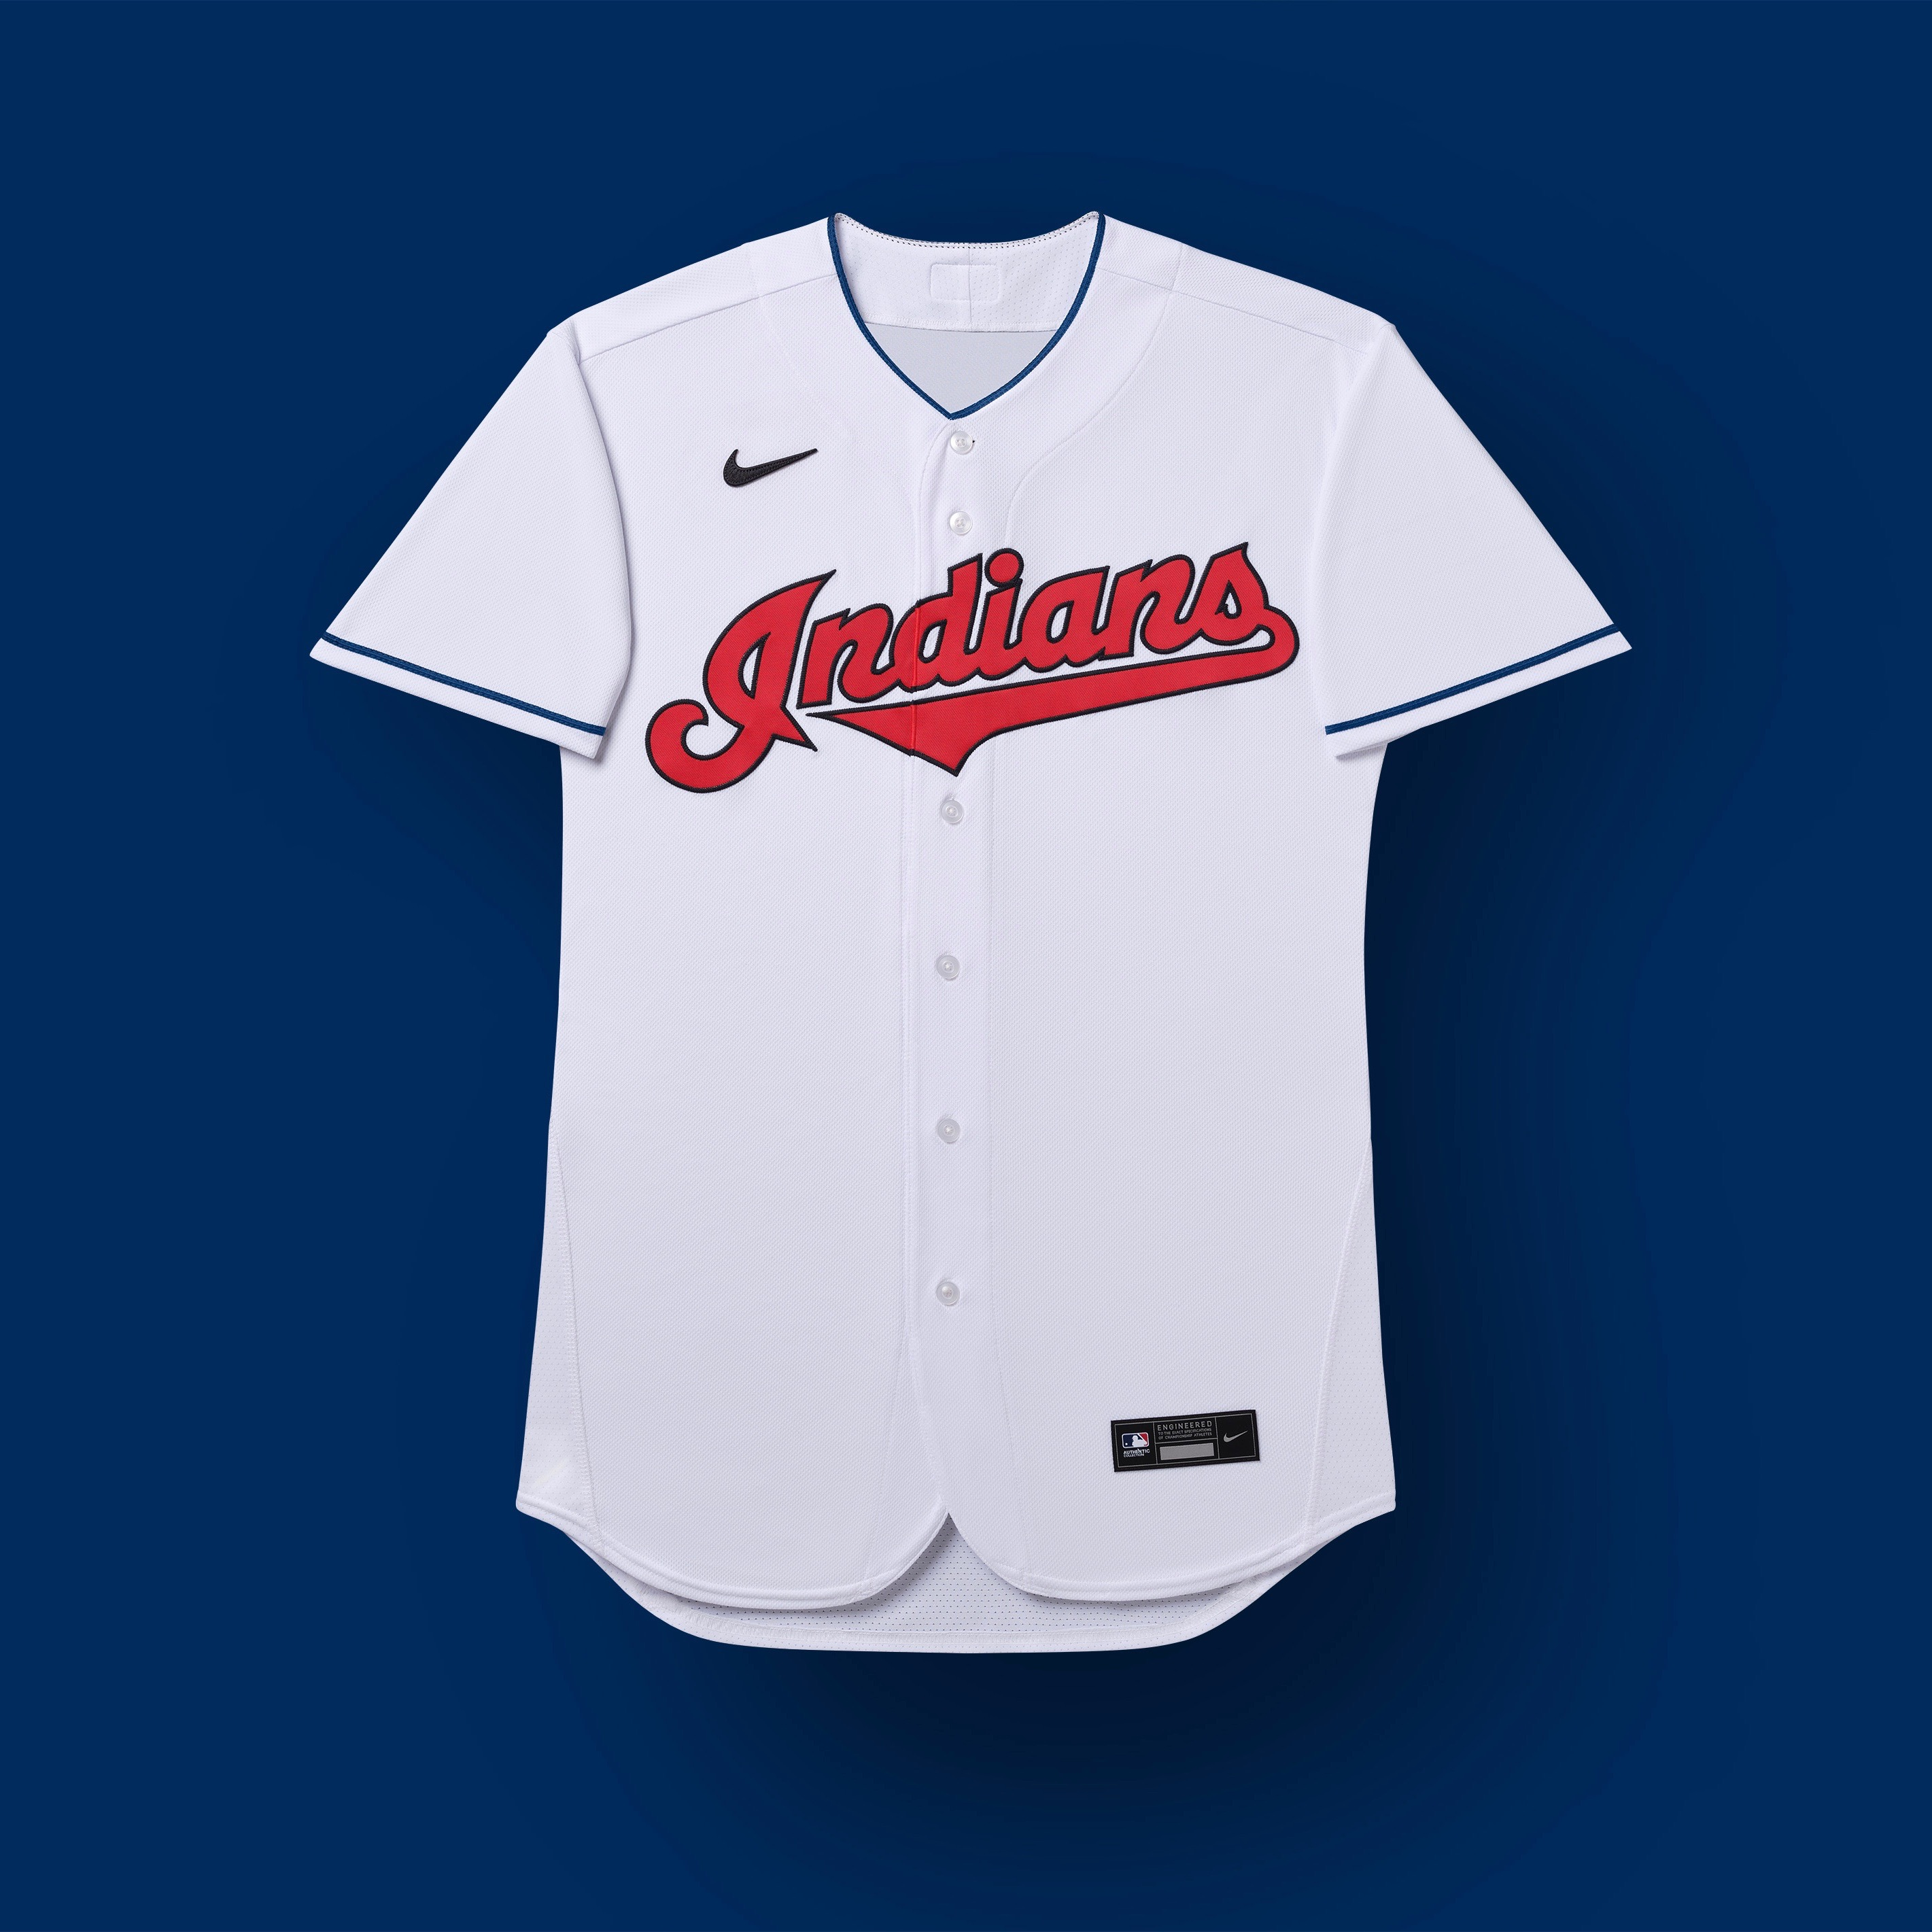 cleveland indians 2020 uniforms